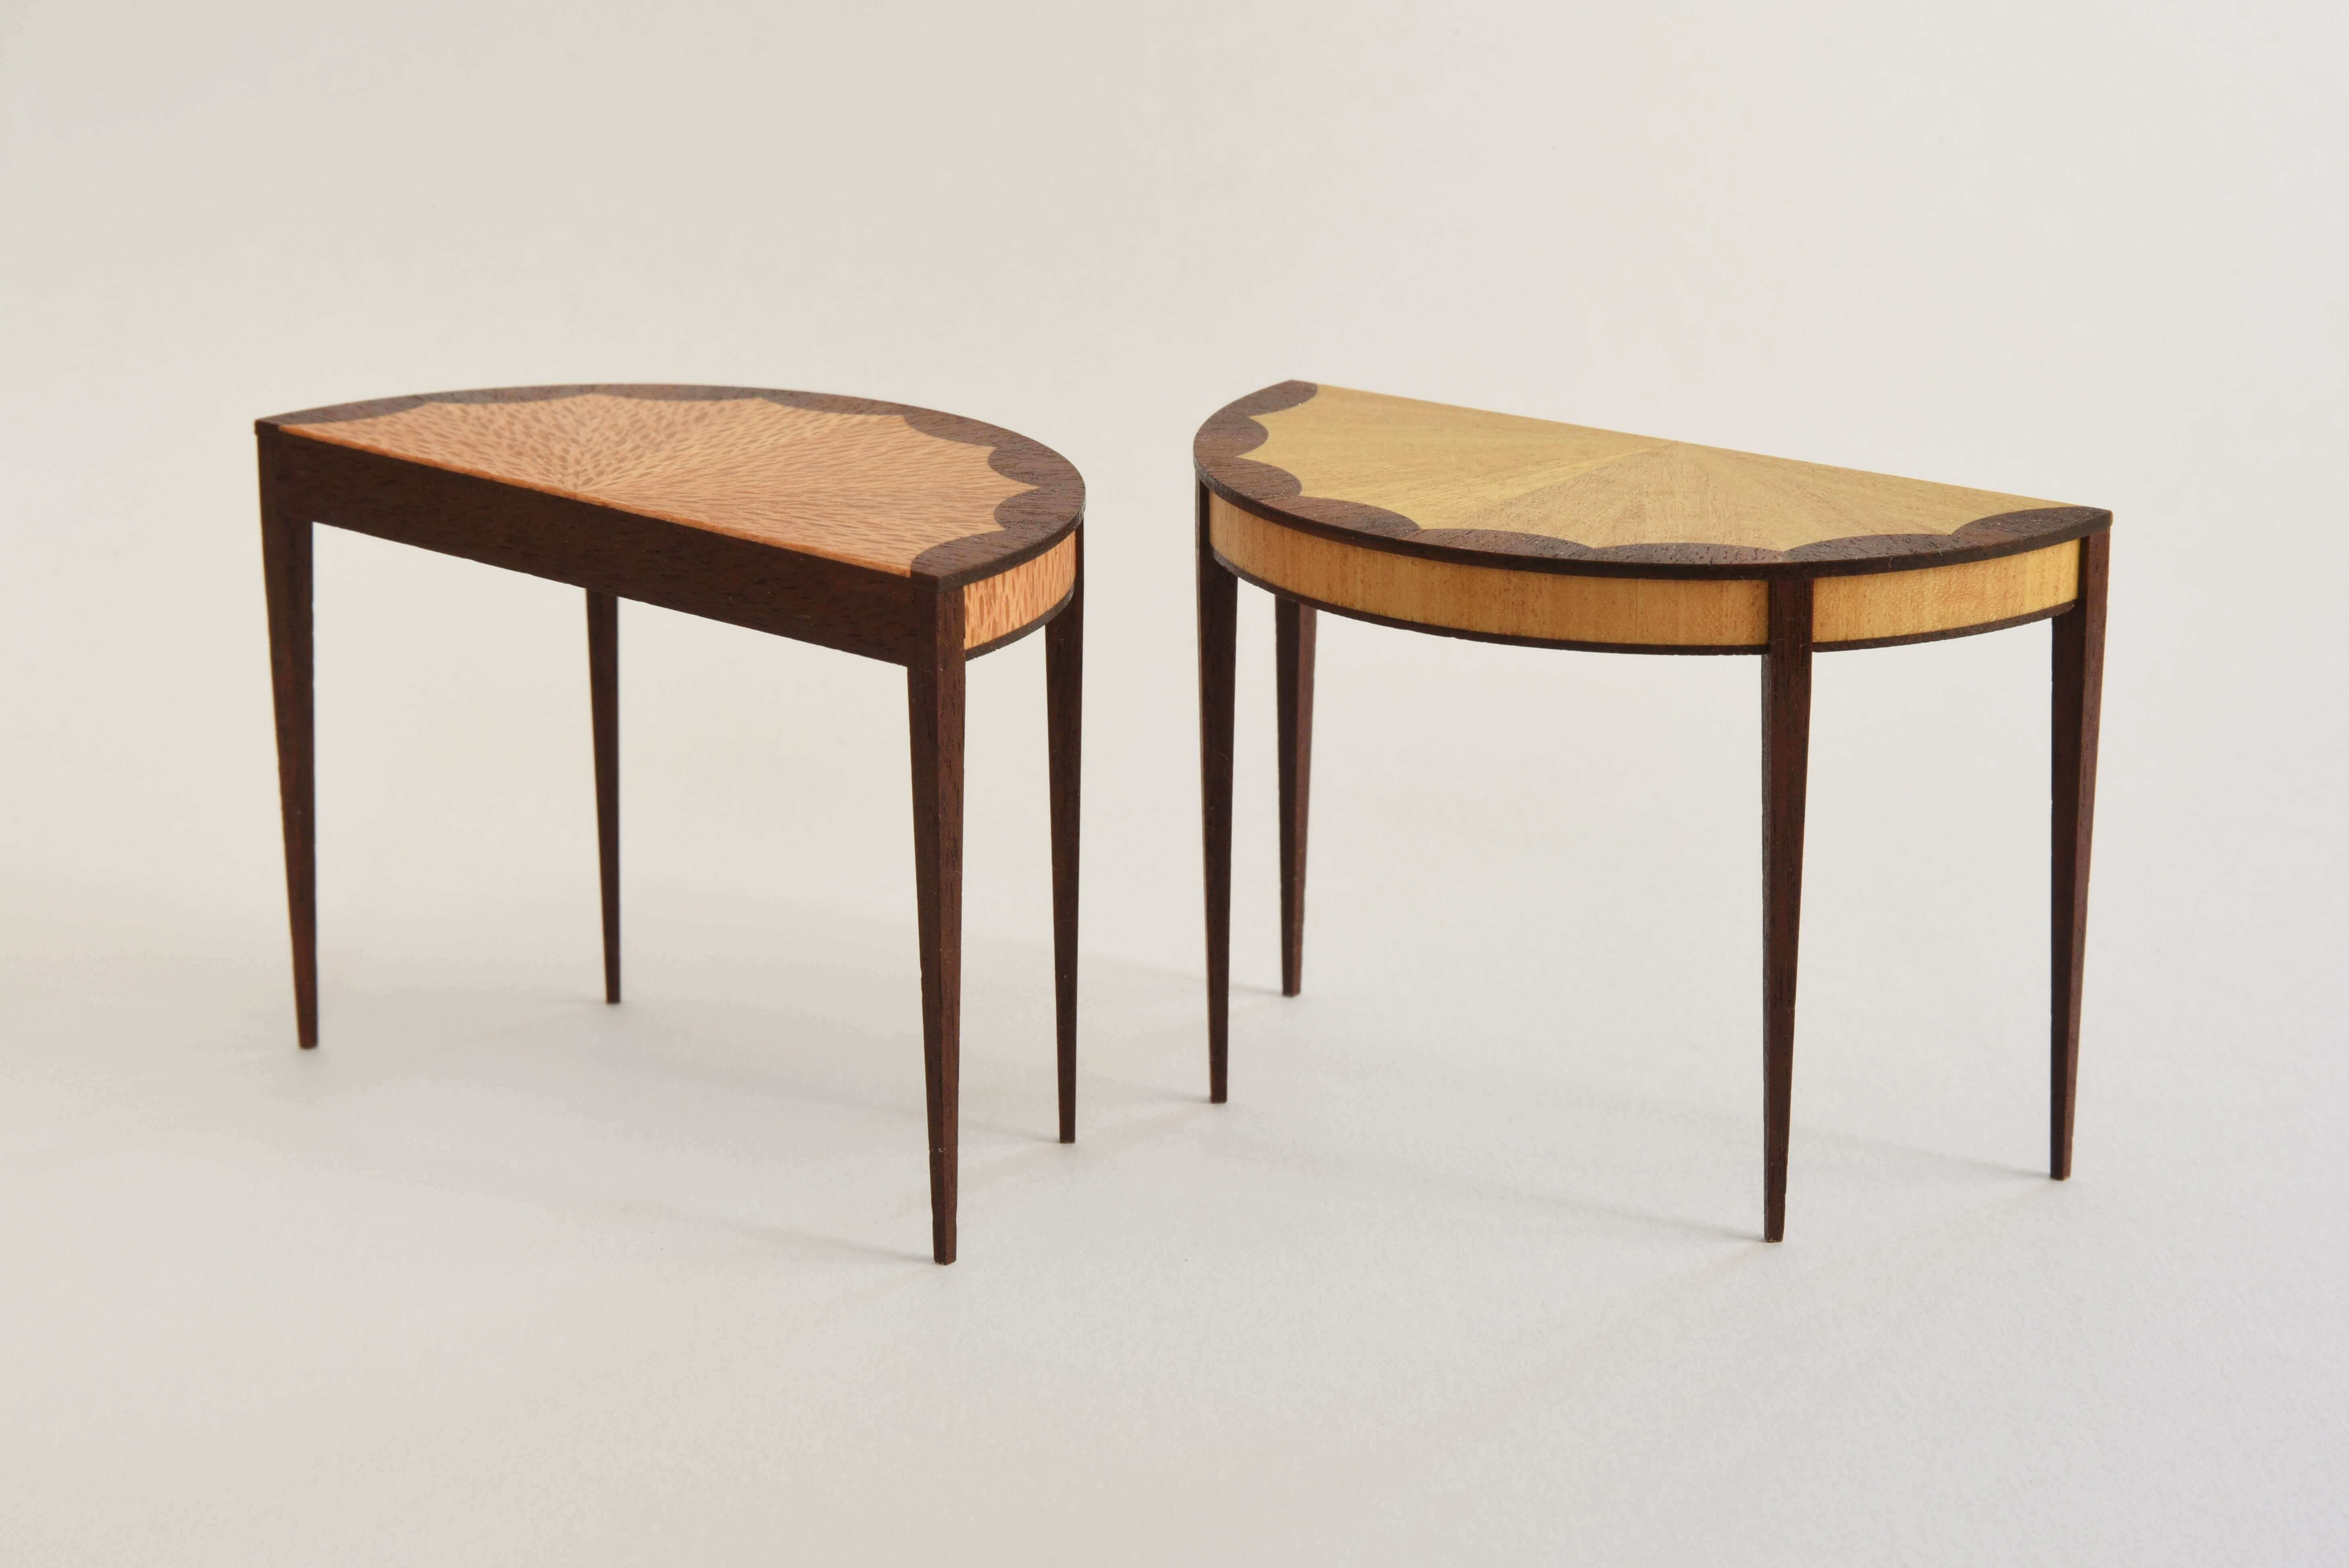 One-twelfth scale tables made out of beech and mahogany (left) and satinwood and mahogany (right).